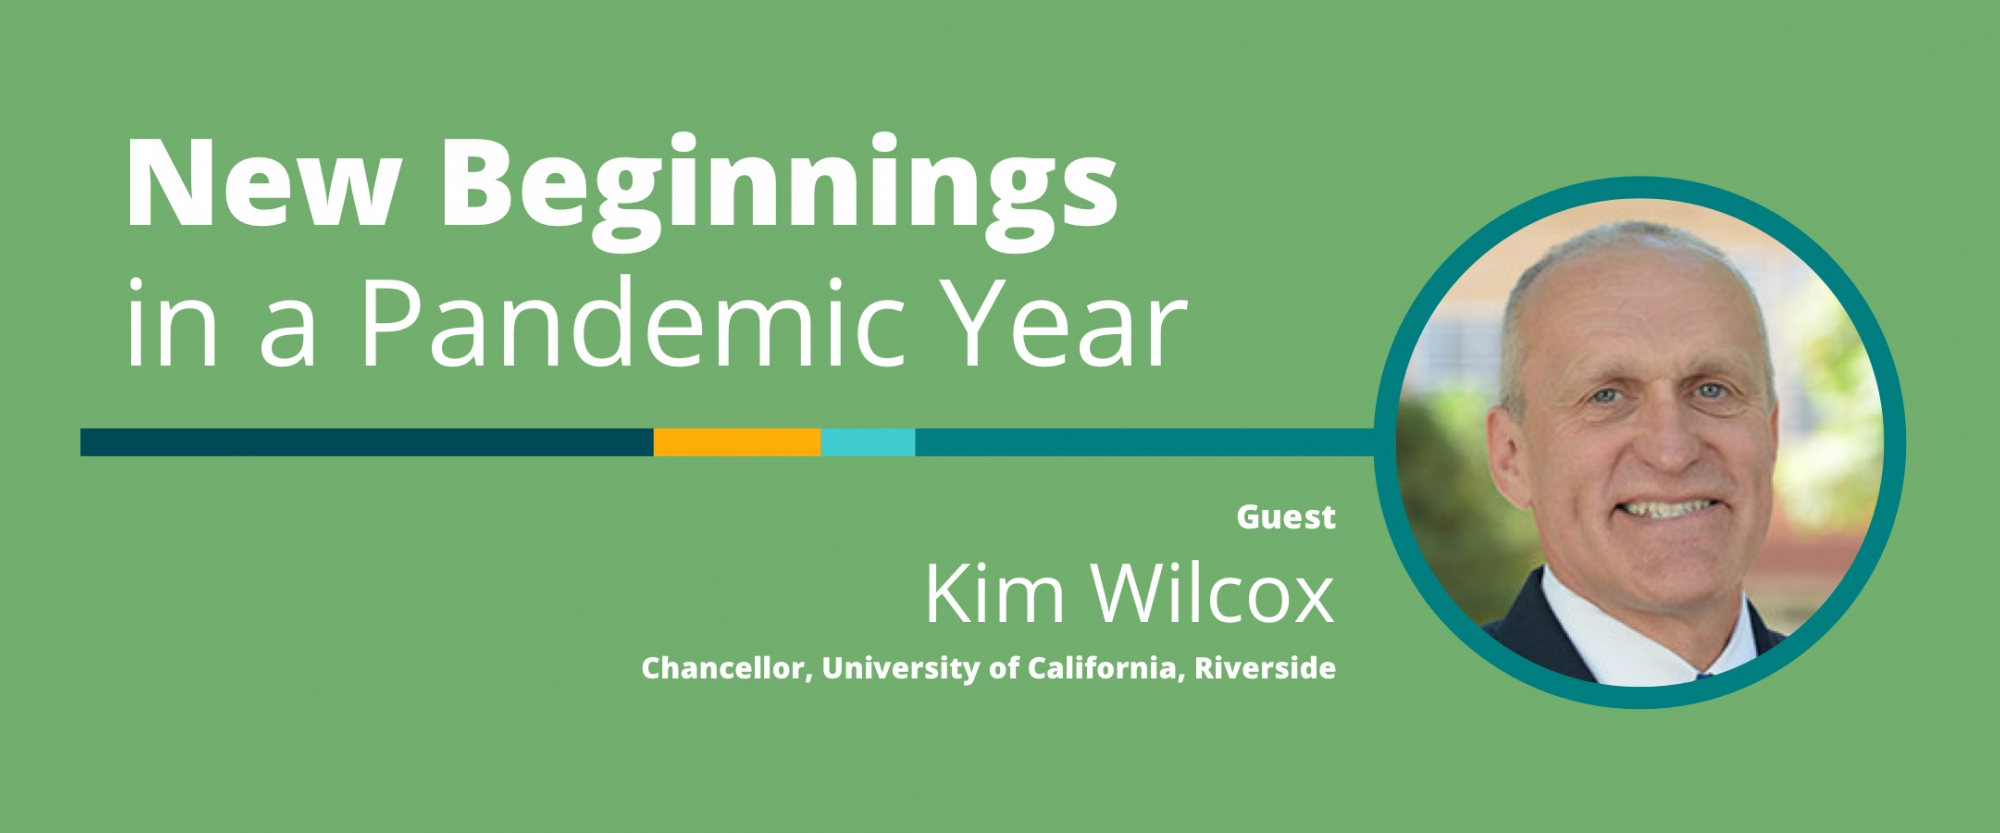 New Beginnings in a Pandemic Year: A Conversation With Kim Wilcox, Chancellor of the University of California, Riverside